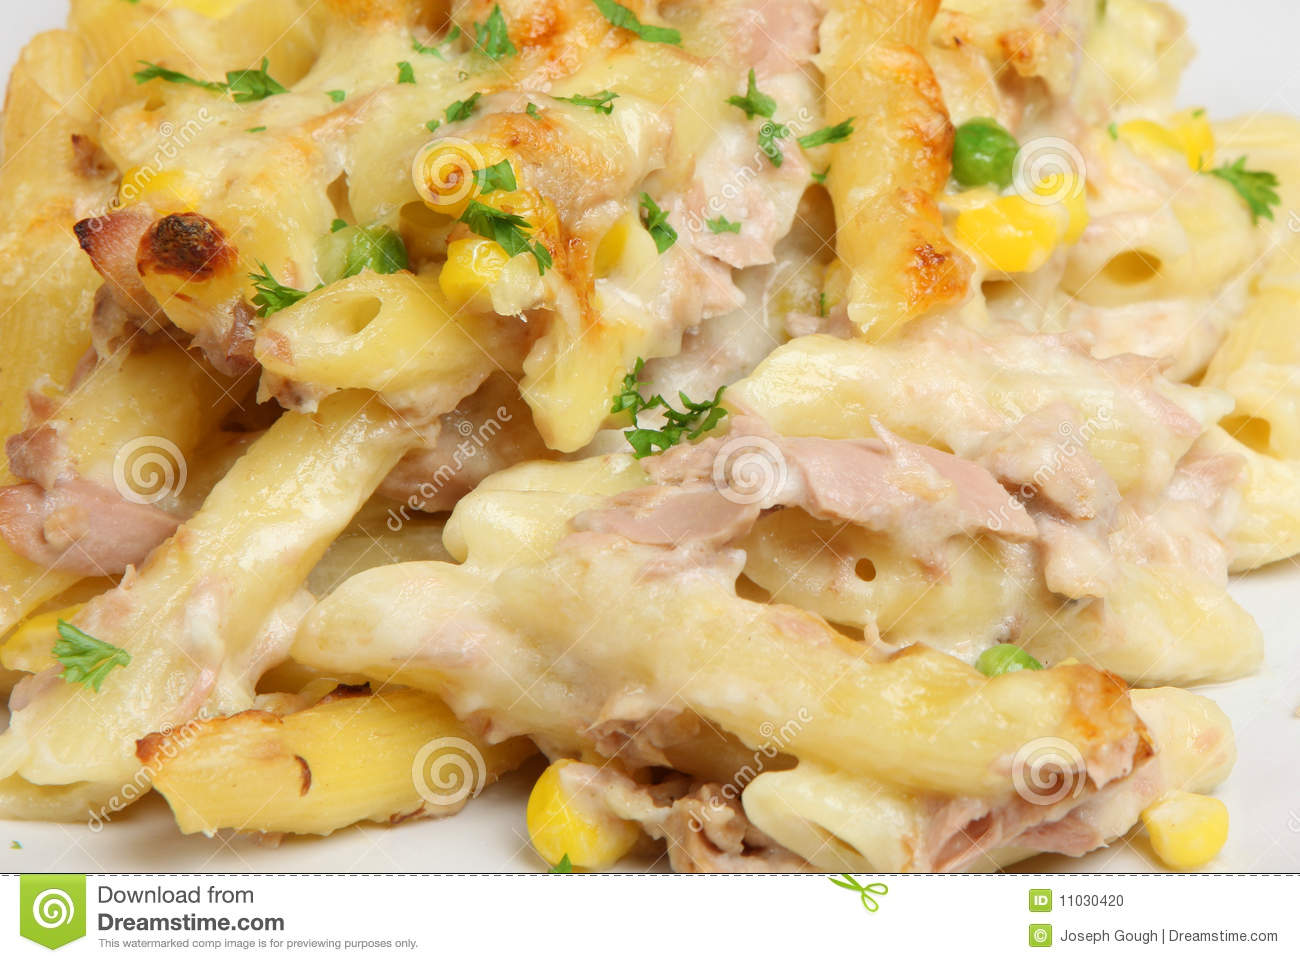 Tuna fish pasta bake stock photo image 11030420 for Tuna fish pasta